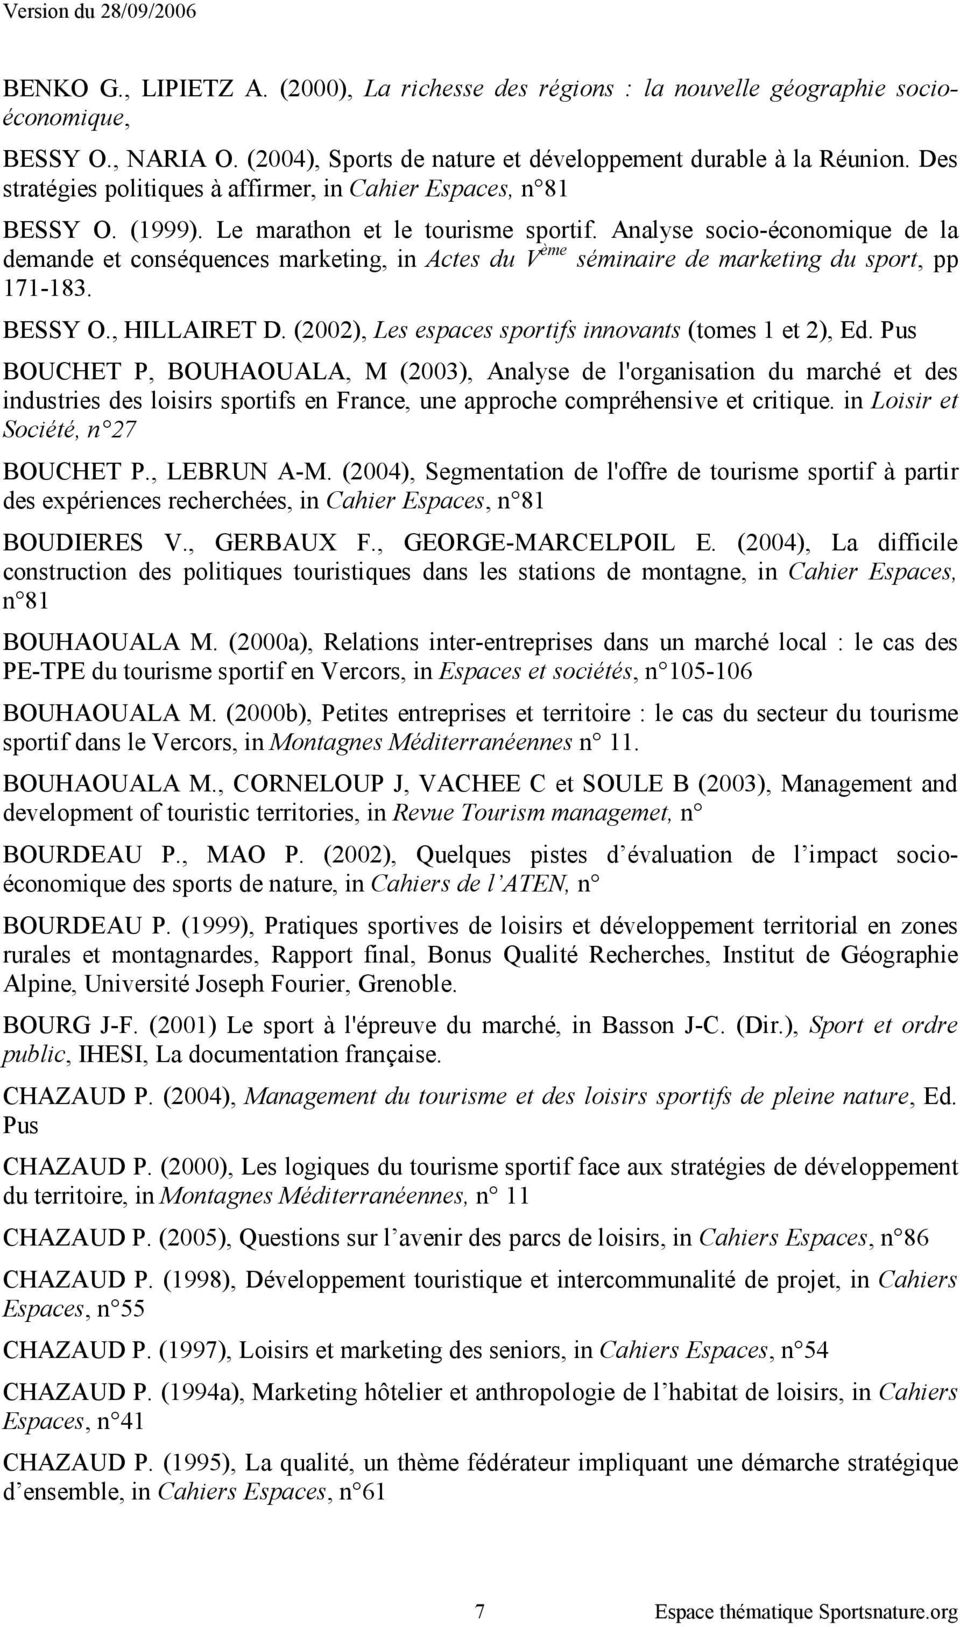 Analyse socio-économique de la demande et conséquences marketing, in Actes du V ème séminaire de marketing du sport, pp 171-183. BESSY O., HILLAIRET D.